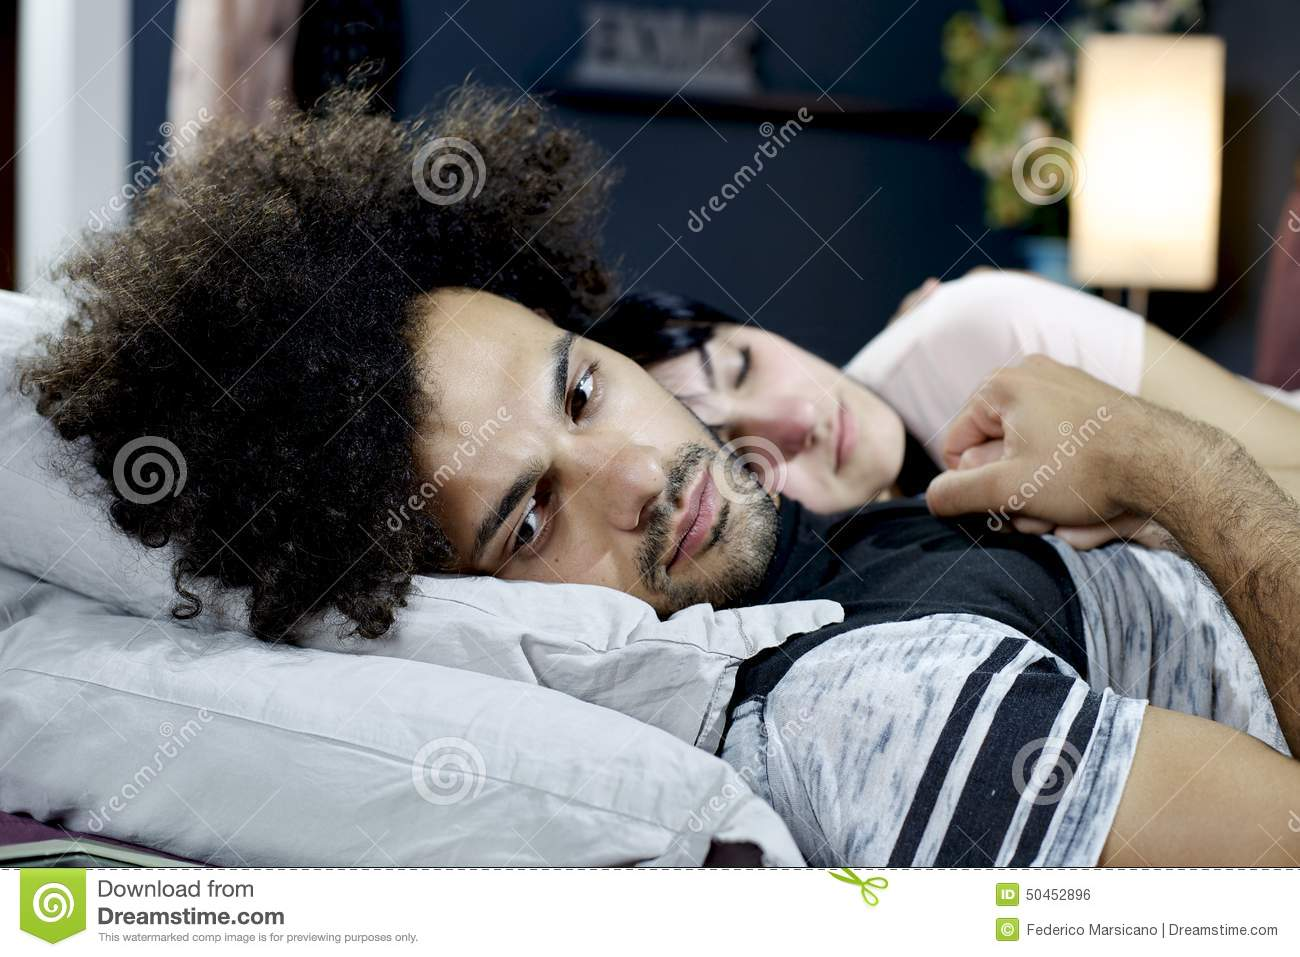 Sad man almost crying in bed holding hand of girlfriend